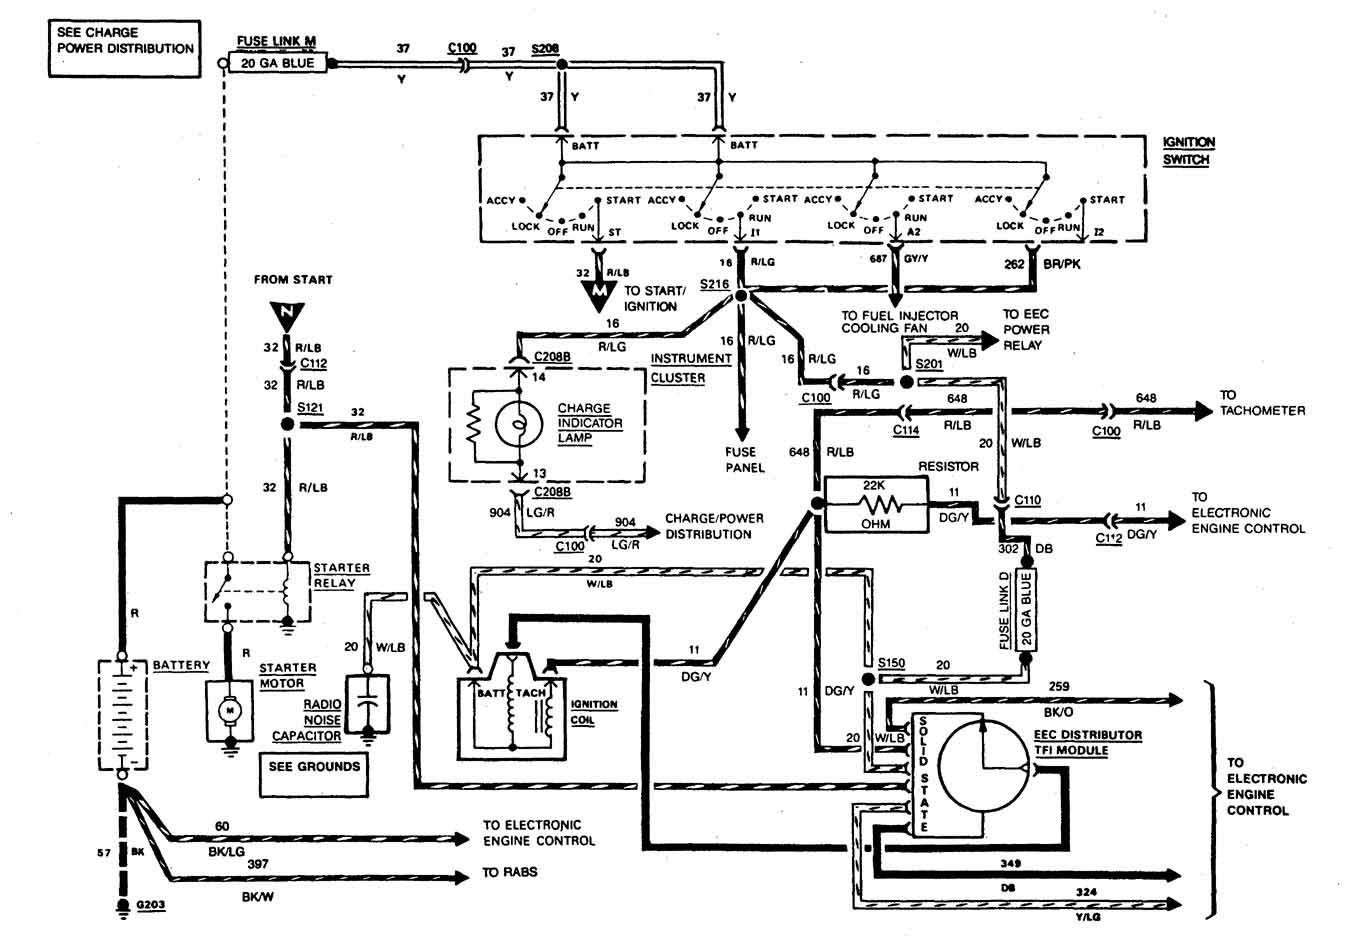 Ford Bronco Starter Solenoid Wiring Diagram Inspirational For 1990 89 F250 Diagrams Schematics With